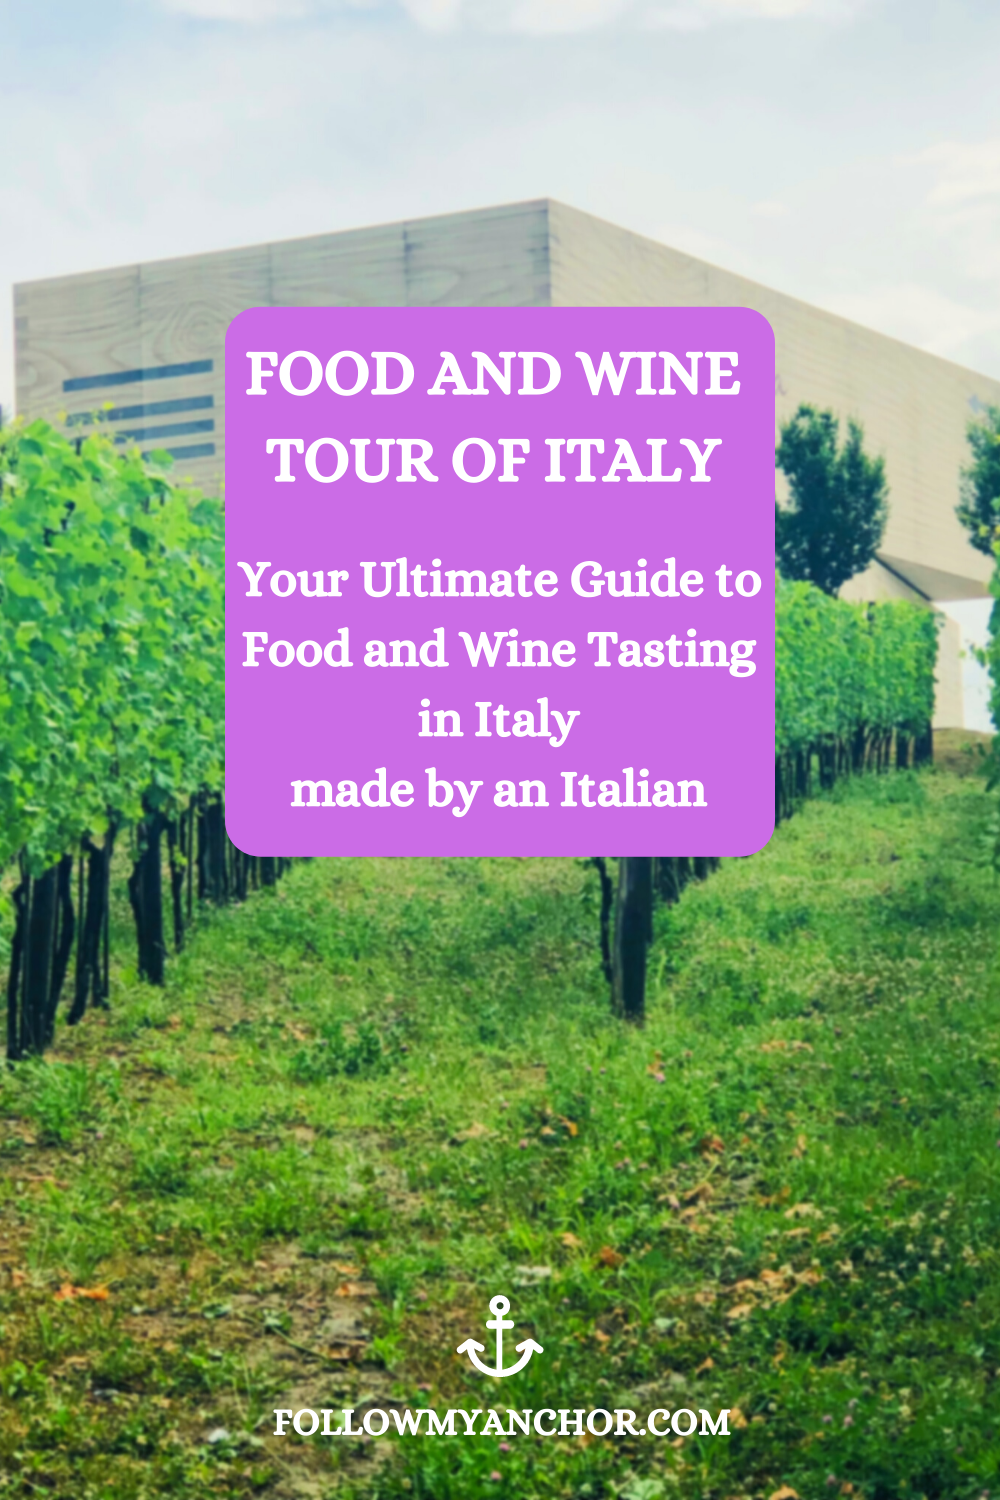 THE BEST FOOD AND WINE TOUR OF ITALY MADE BY AN ITALIAN